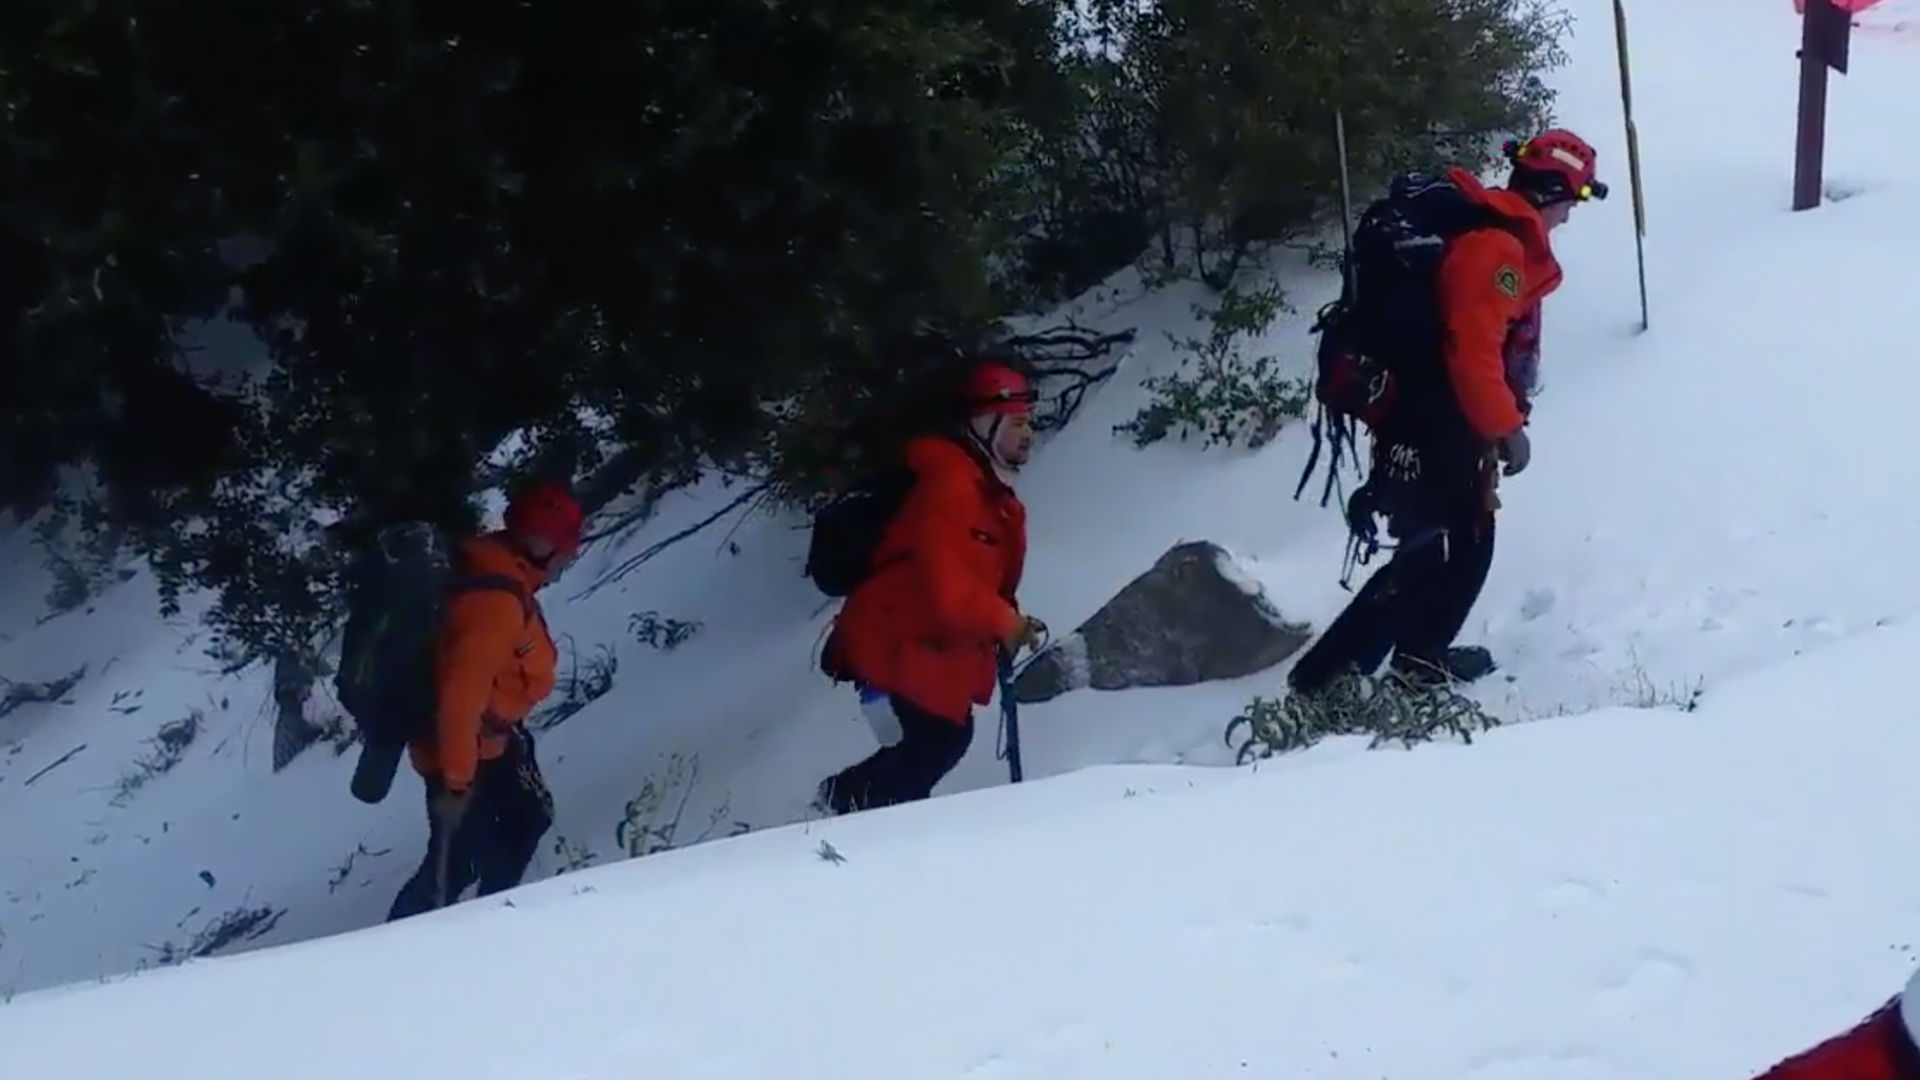 Los Angeles County Sheriff's Department Search & Rescue Team Members work at the scene where a runner slipped on ice and fell to his death along a trail near Mt. Wilson on Feb. 17, 2019. (Credit: Los Angeles County Sheriff's Department)